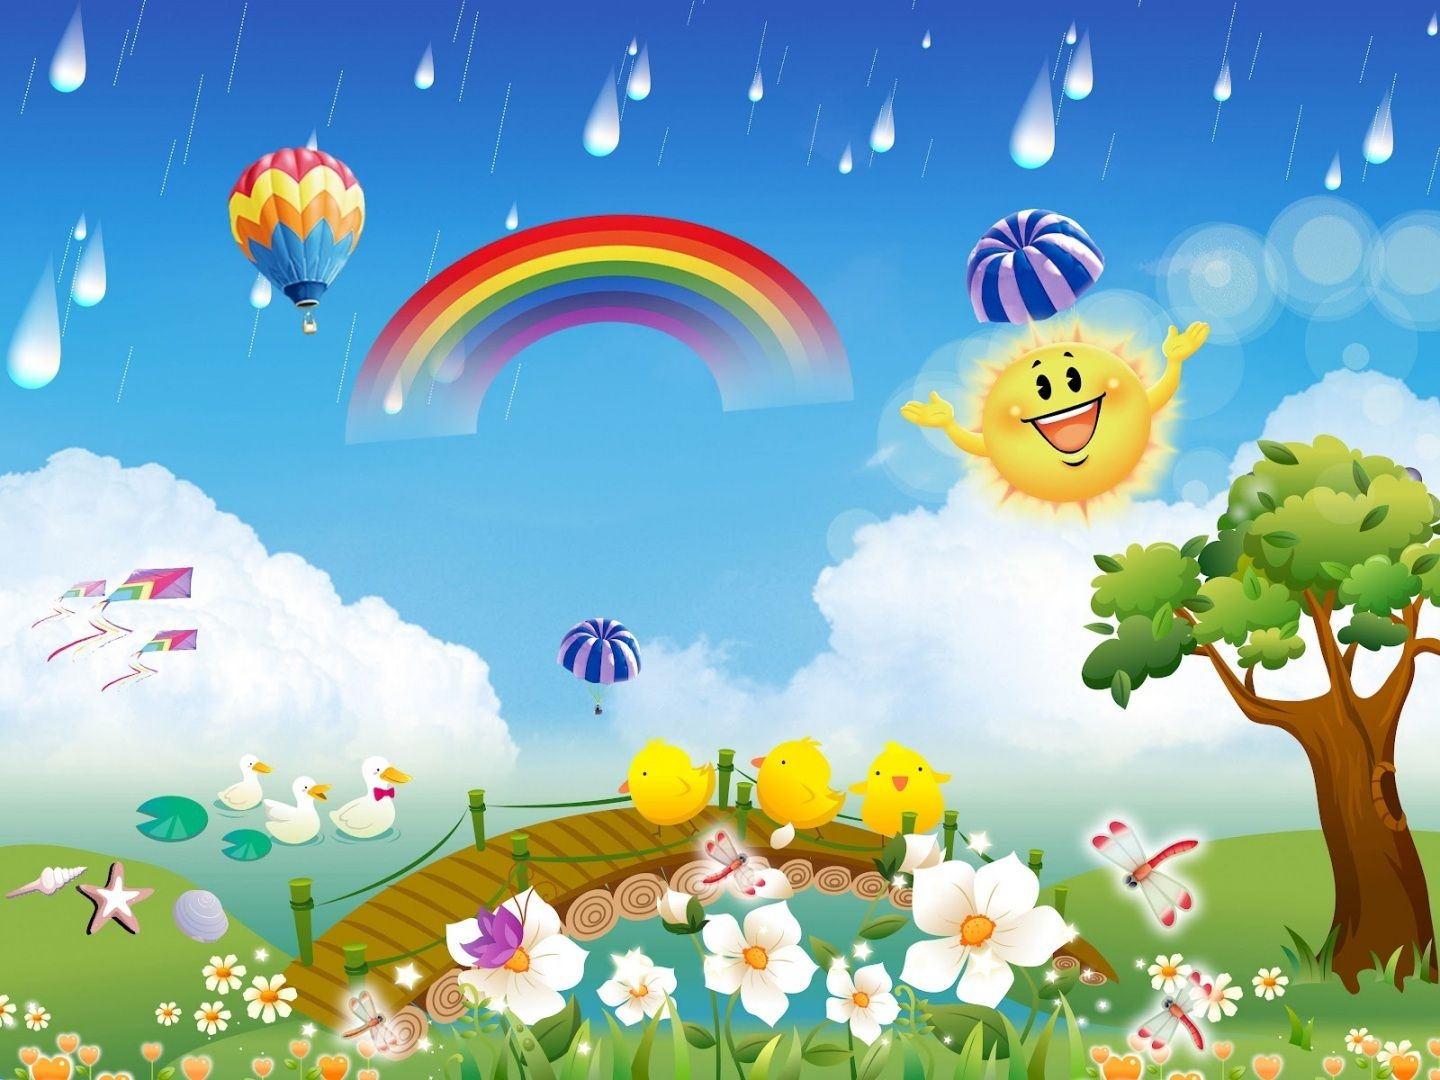 Image Result For Free Download Educational Wallpapers For Kids